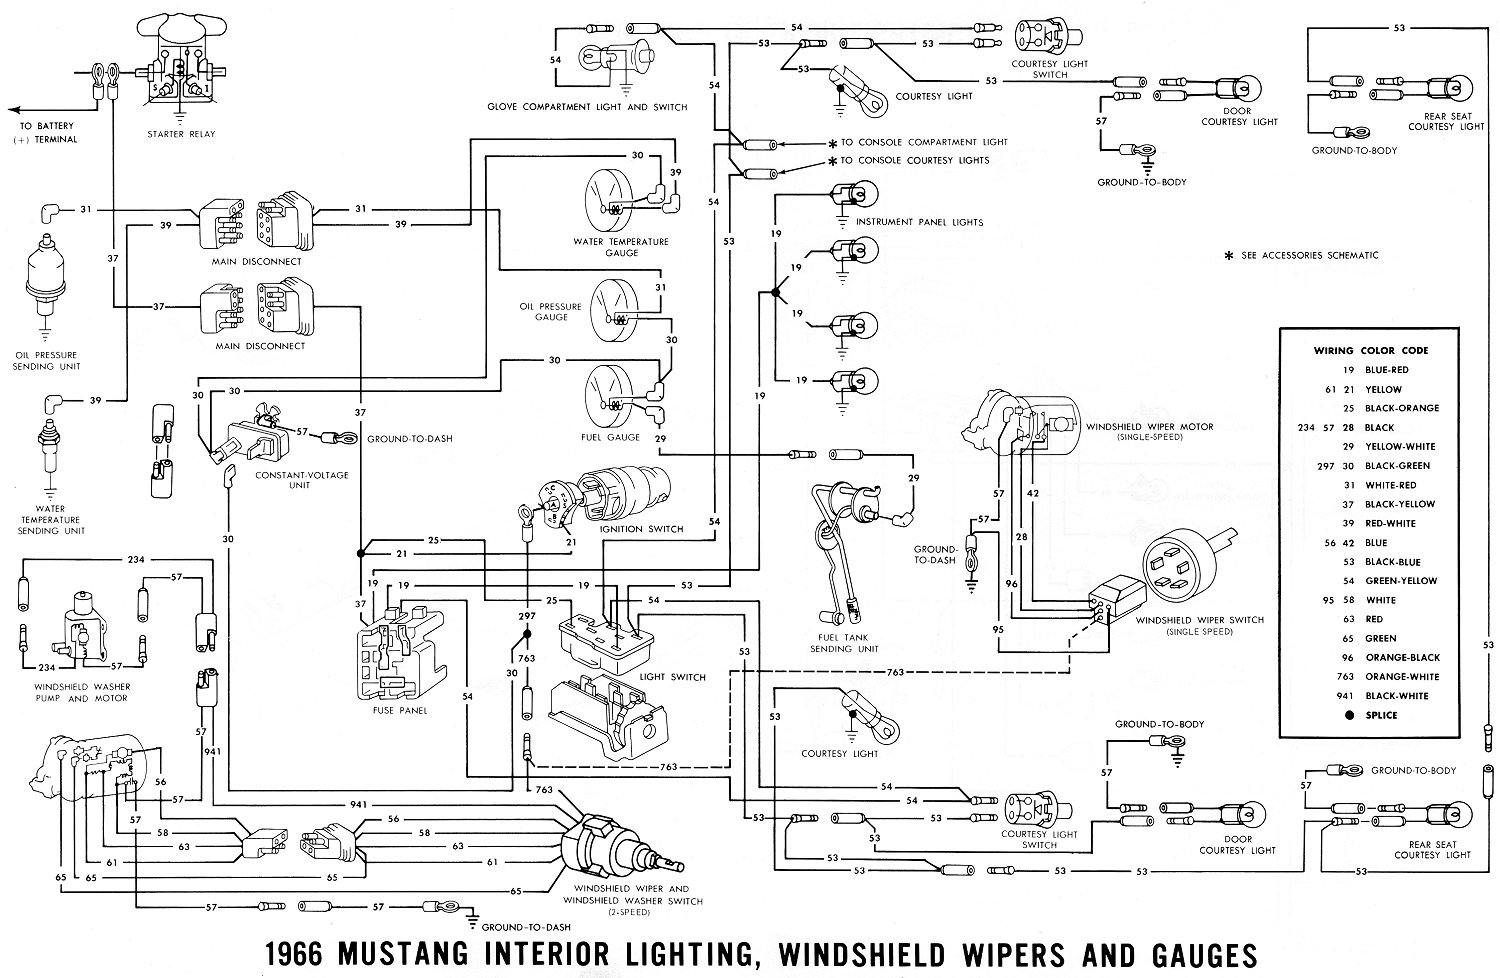 1973 1980 Chevy Gmc Truck Vin Decoder Chart further 2000 Nissan Maxima Gle Fuse Diagram in addition Engine and jet drive further Parts Illustrations besides 57486 How Replace Your Evap Canister Solenoid P0455 Code. on 1998 honda civic engine diagram